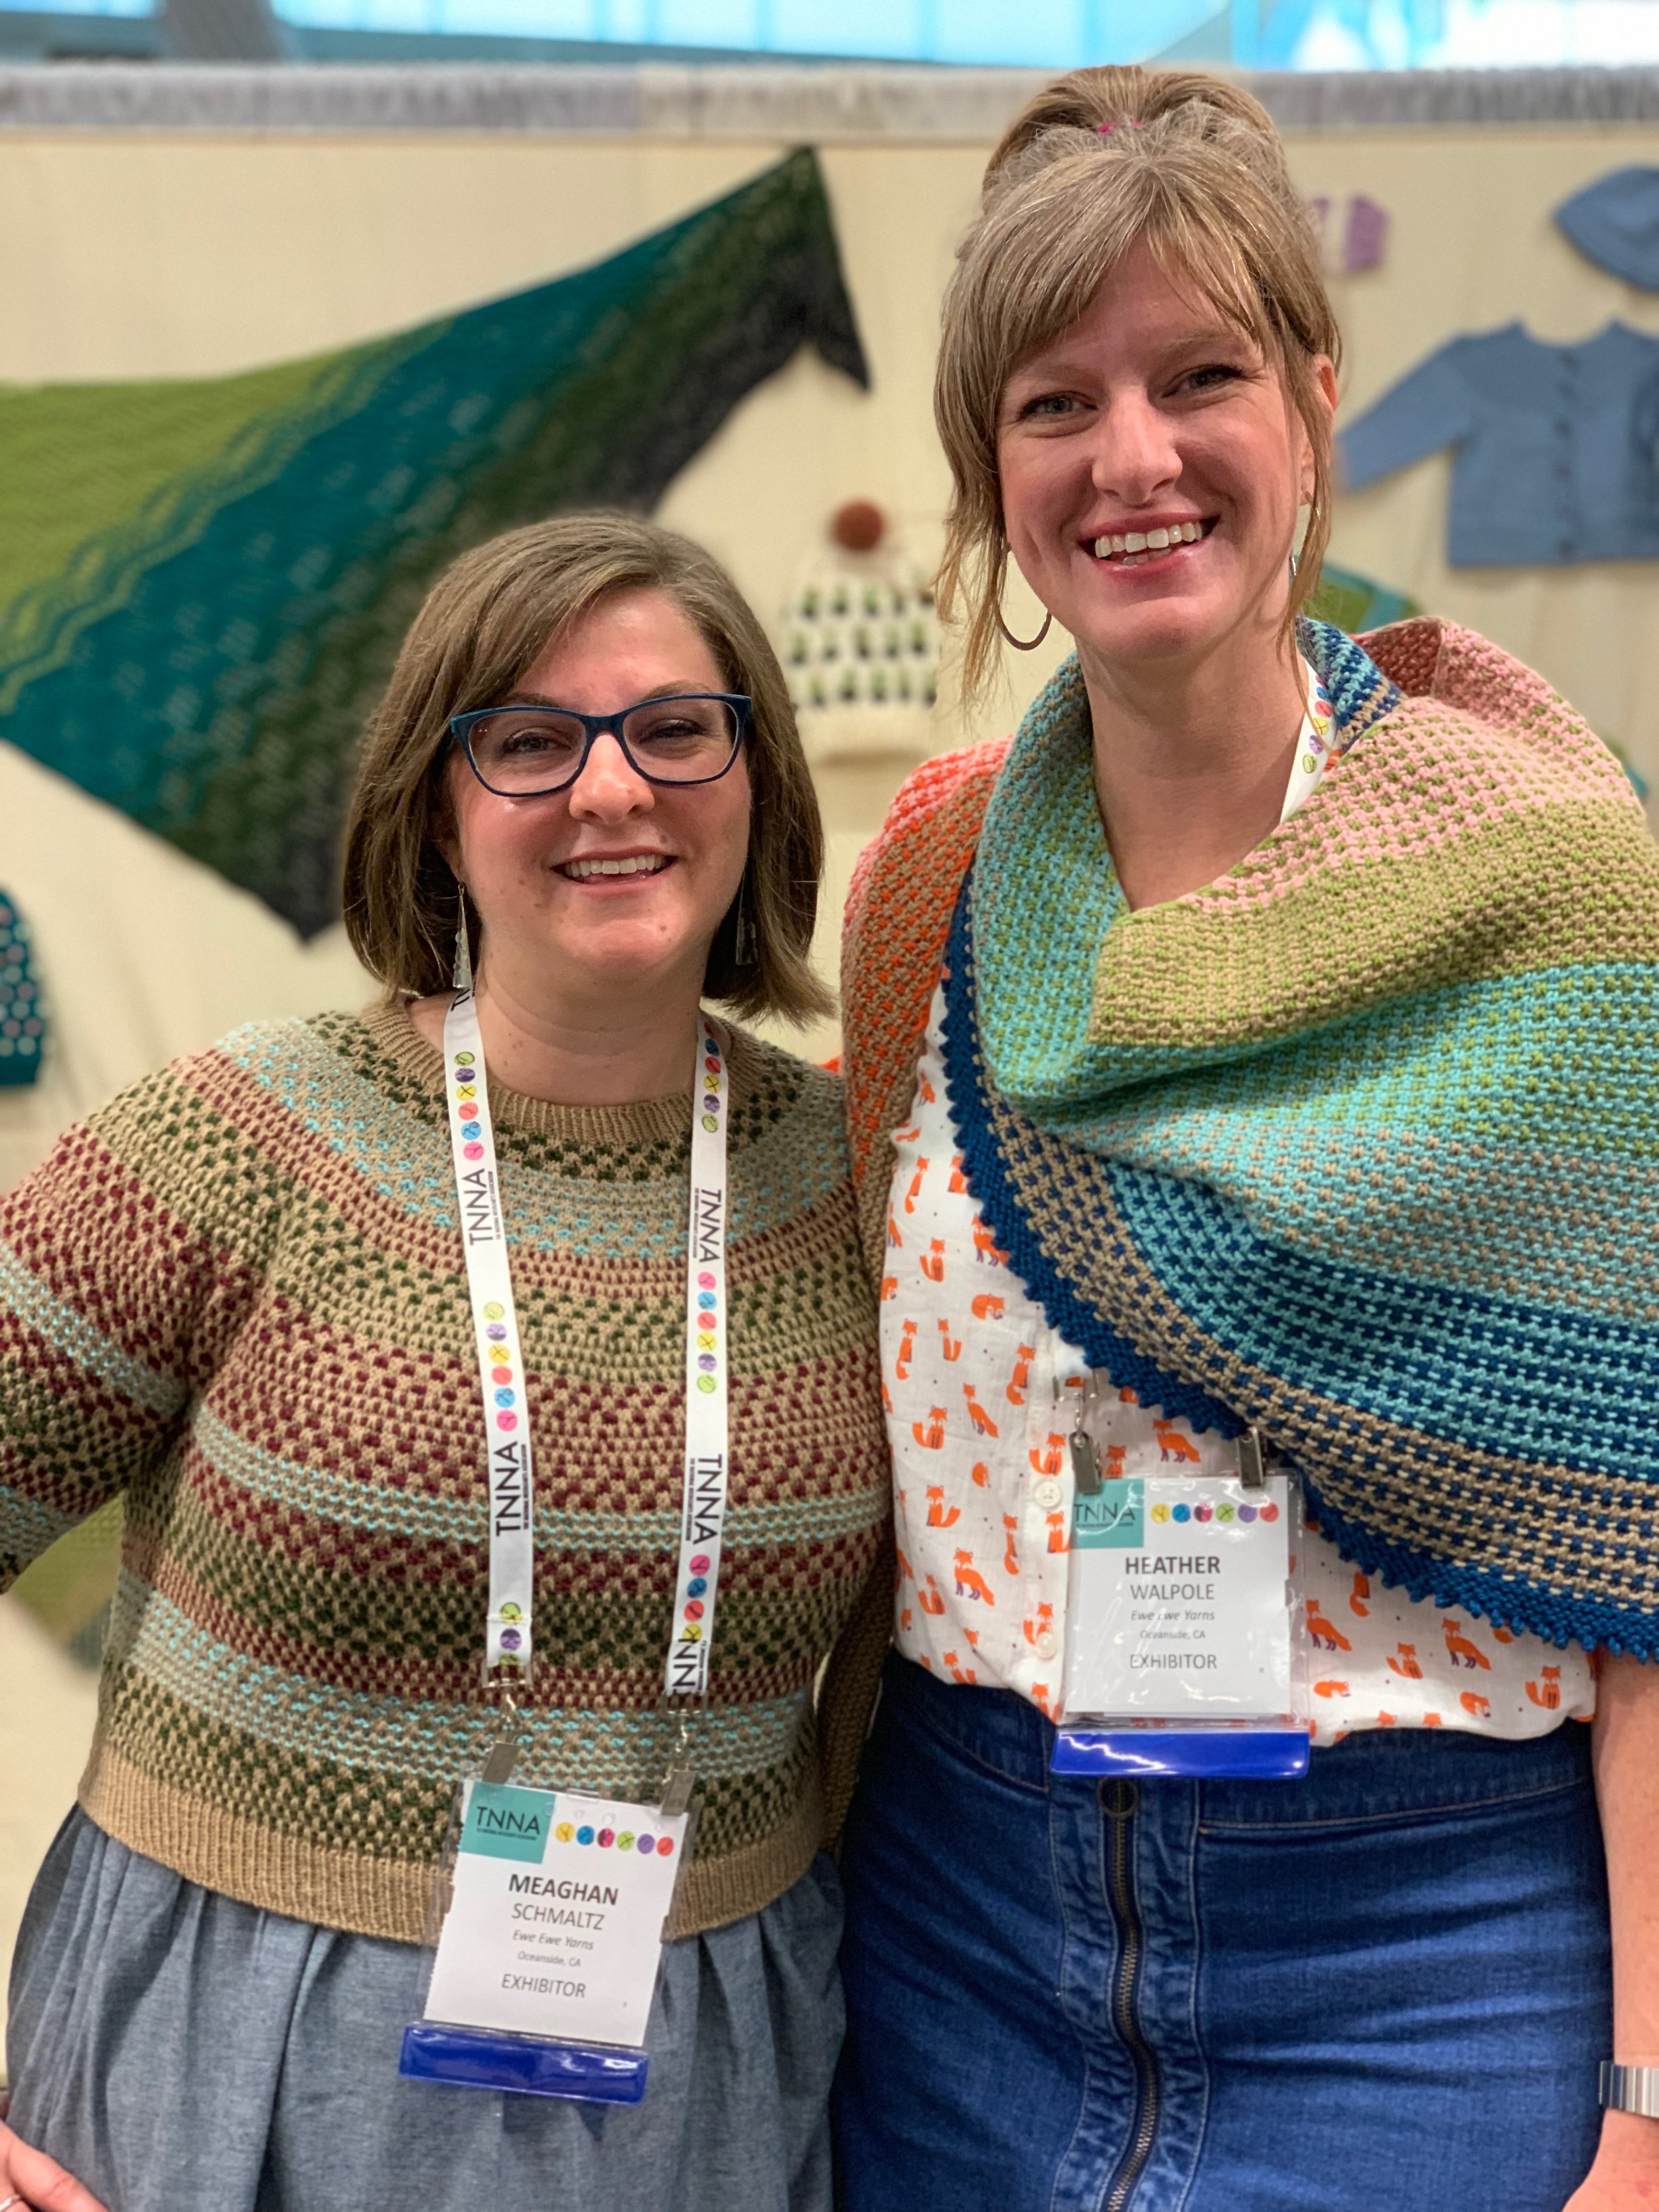 Designer Meaghan Schmaltz and Ewe Ewe Yarns owner Heather Walpole at the TNNA Trade Show in Cleveland, OH.